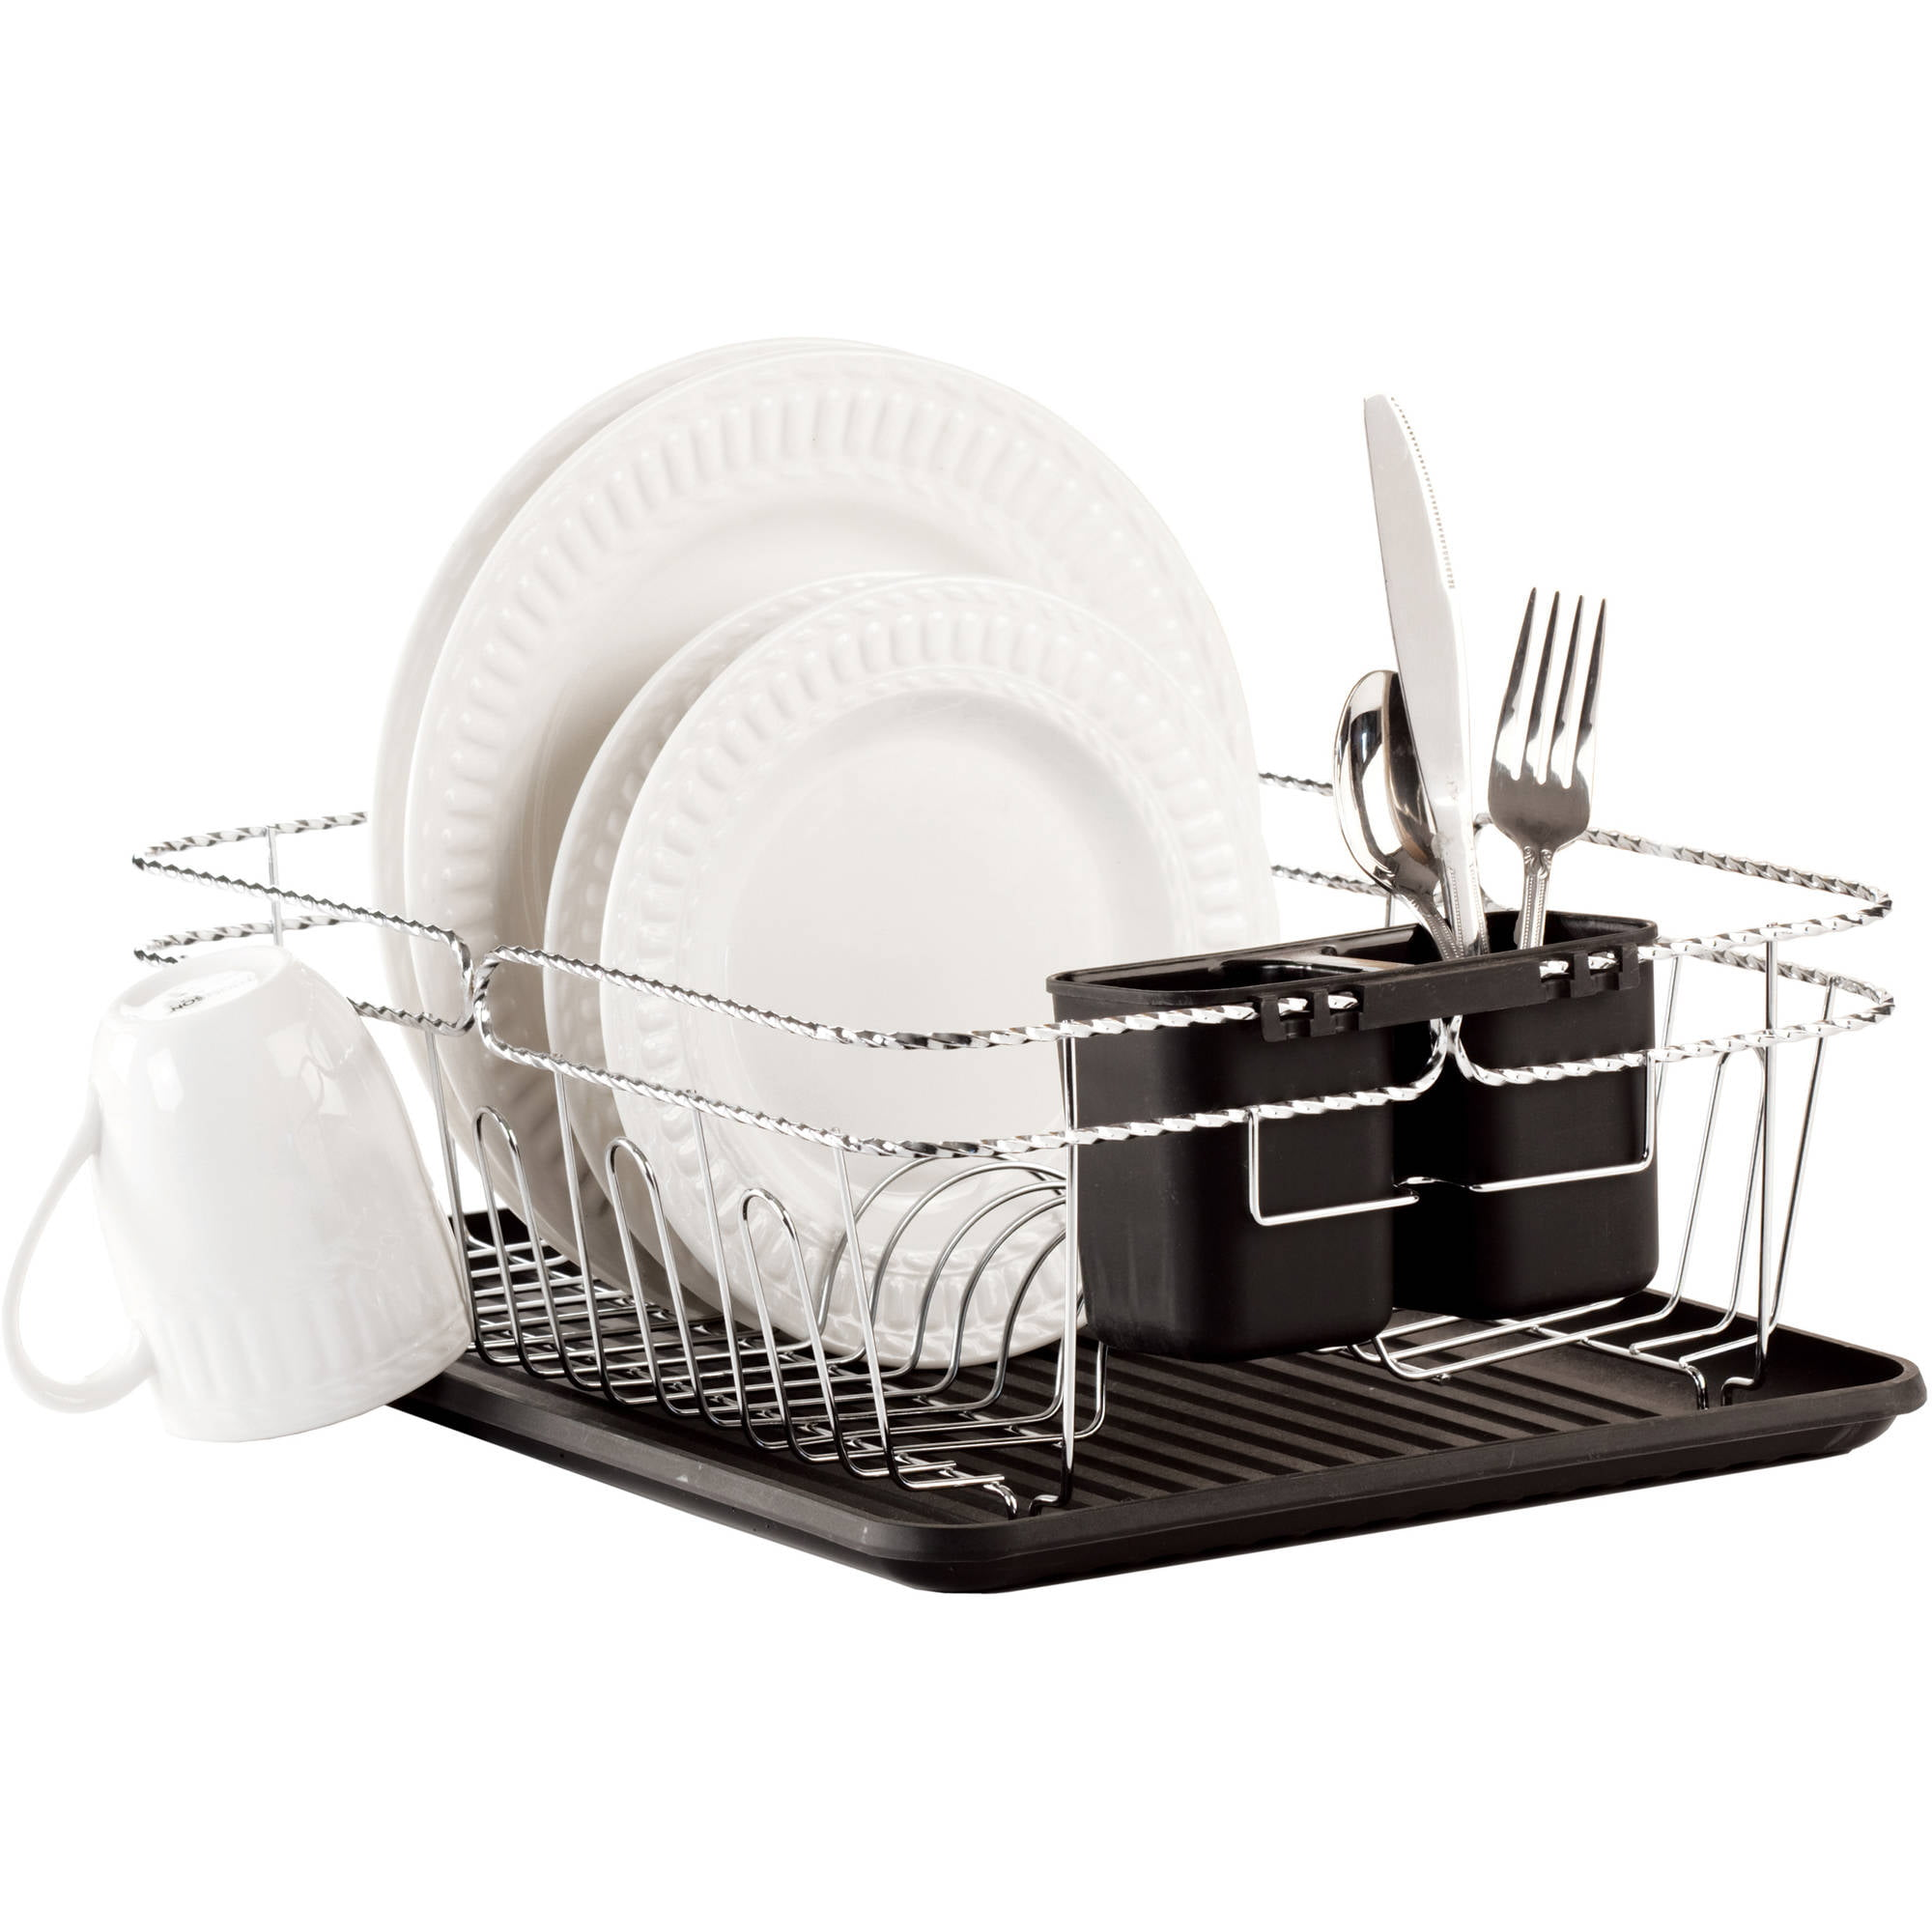 "Kennedy Home Collection Kitchen Details 3-Piece Twisted Dish Rack, Chrome, 16.5"" x... by Kennedy International, INC."